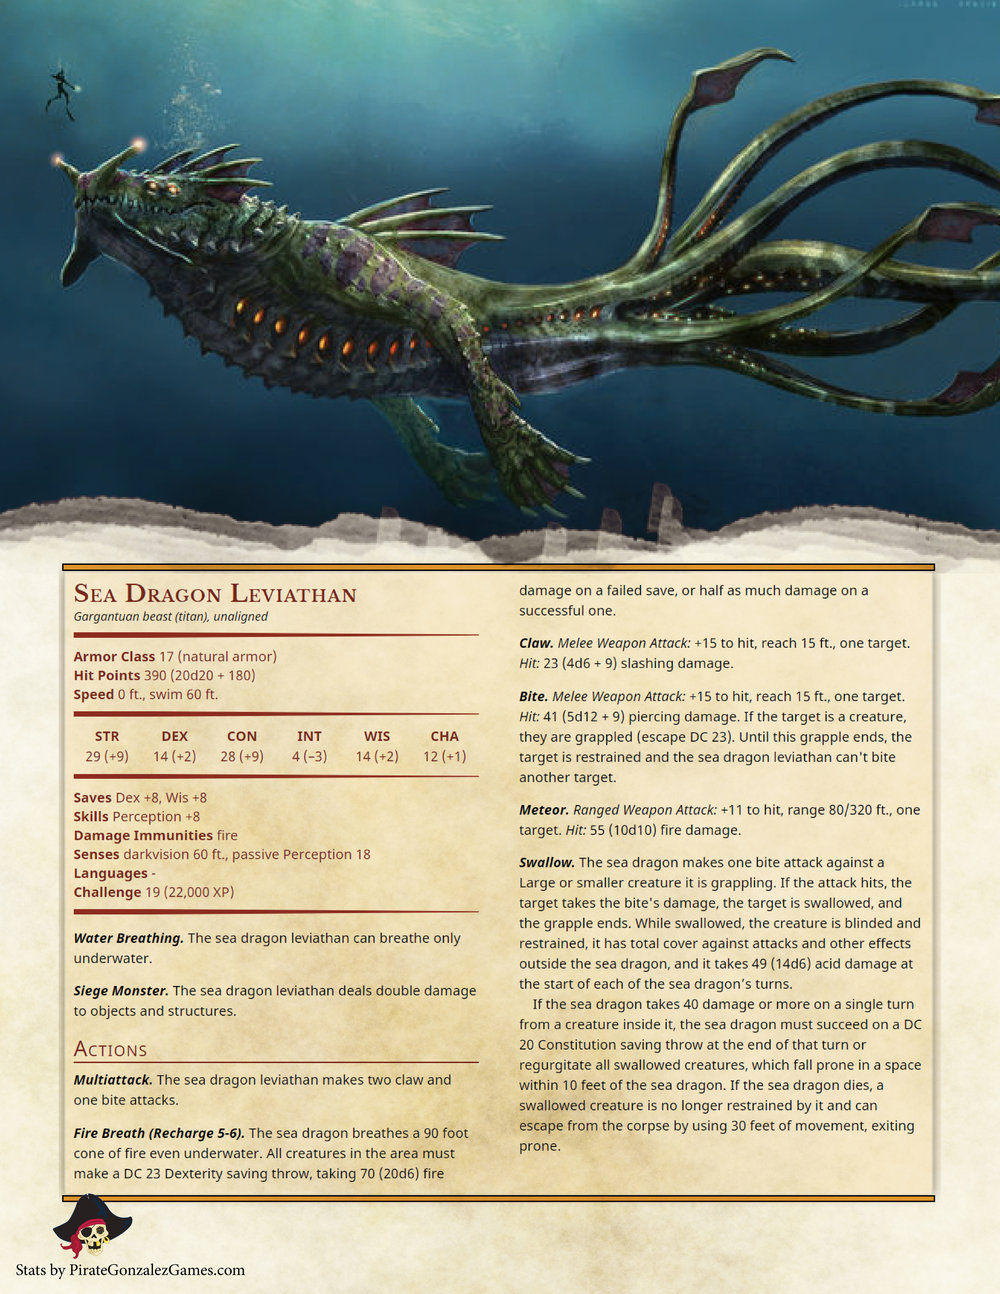 Sea Dragon Leviathan